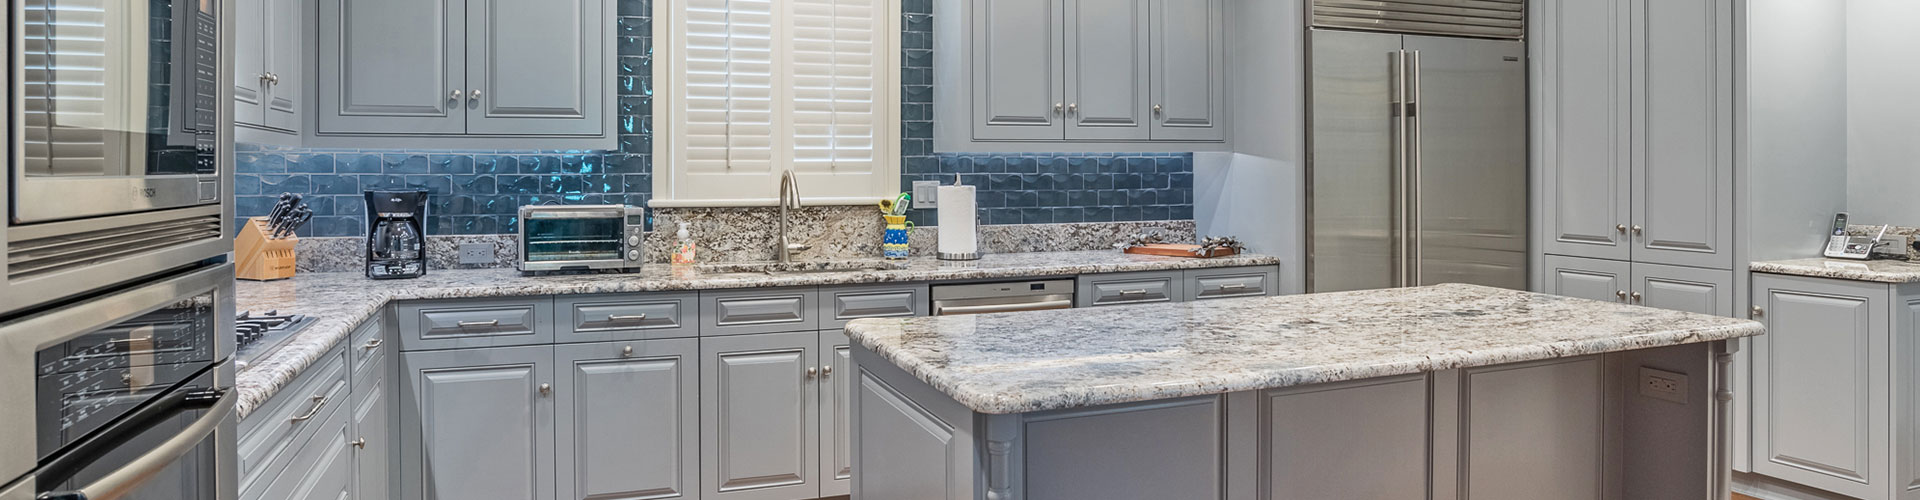 remodeling and gallery kitchen design photos before after services bath remodels